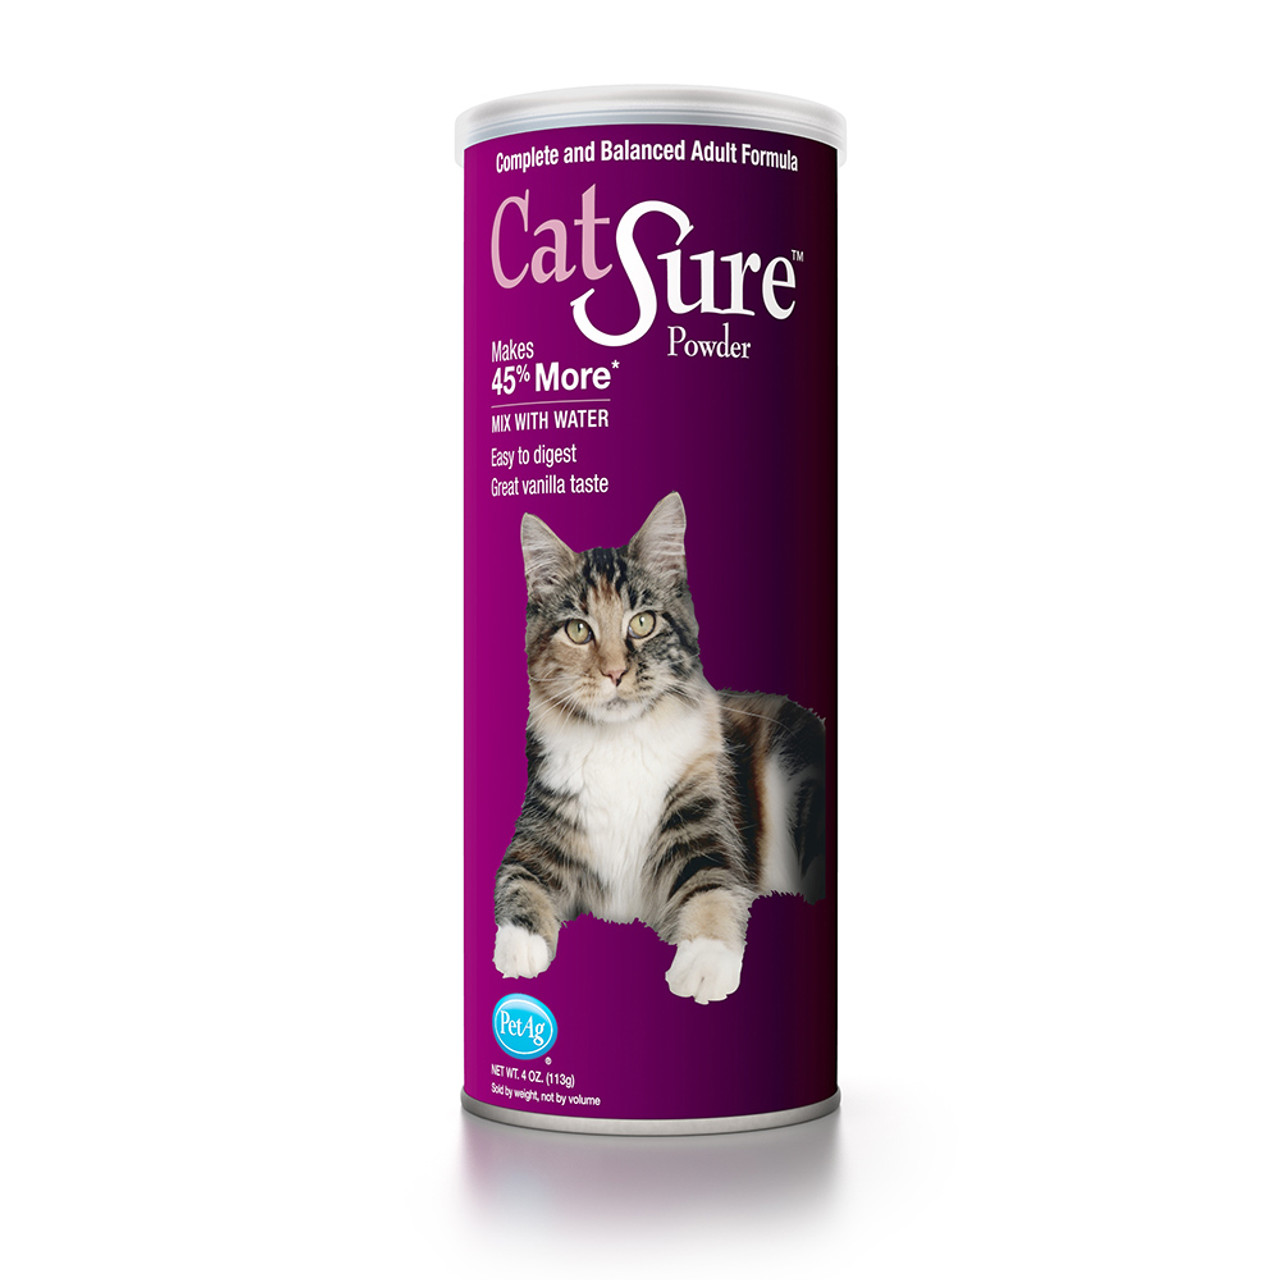 CatSure Powder Meal Replacement for Adult Cats